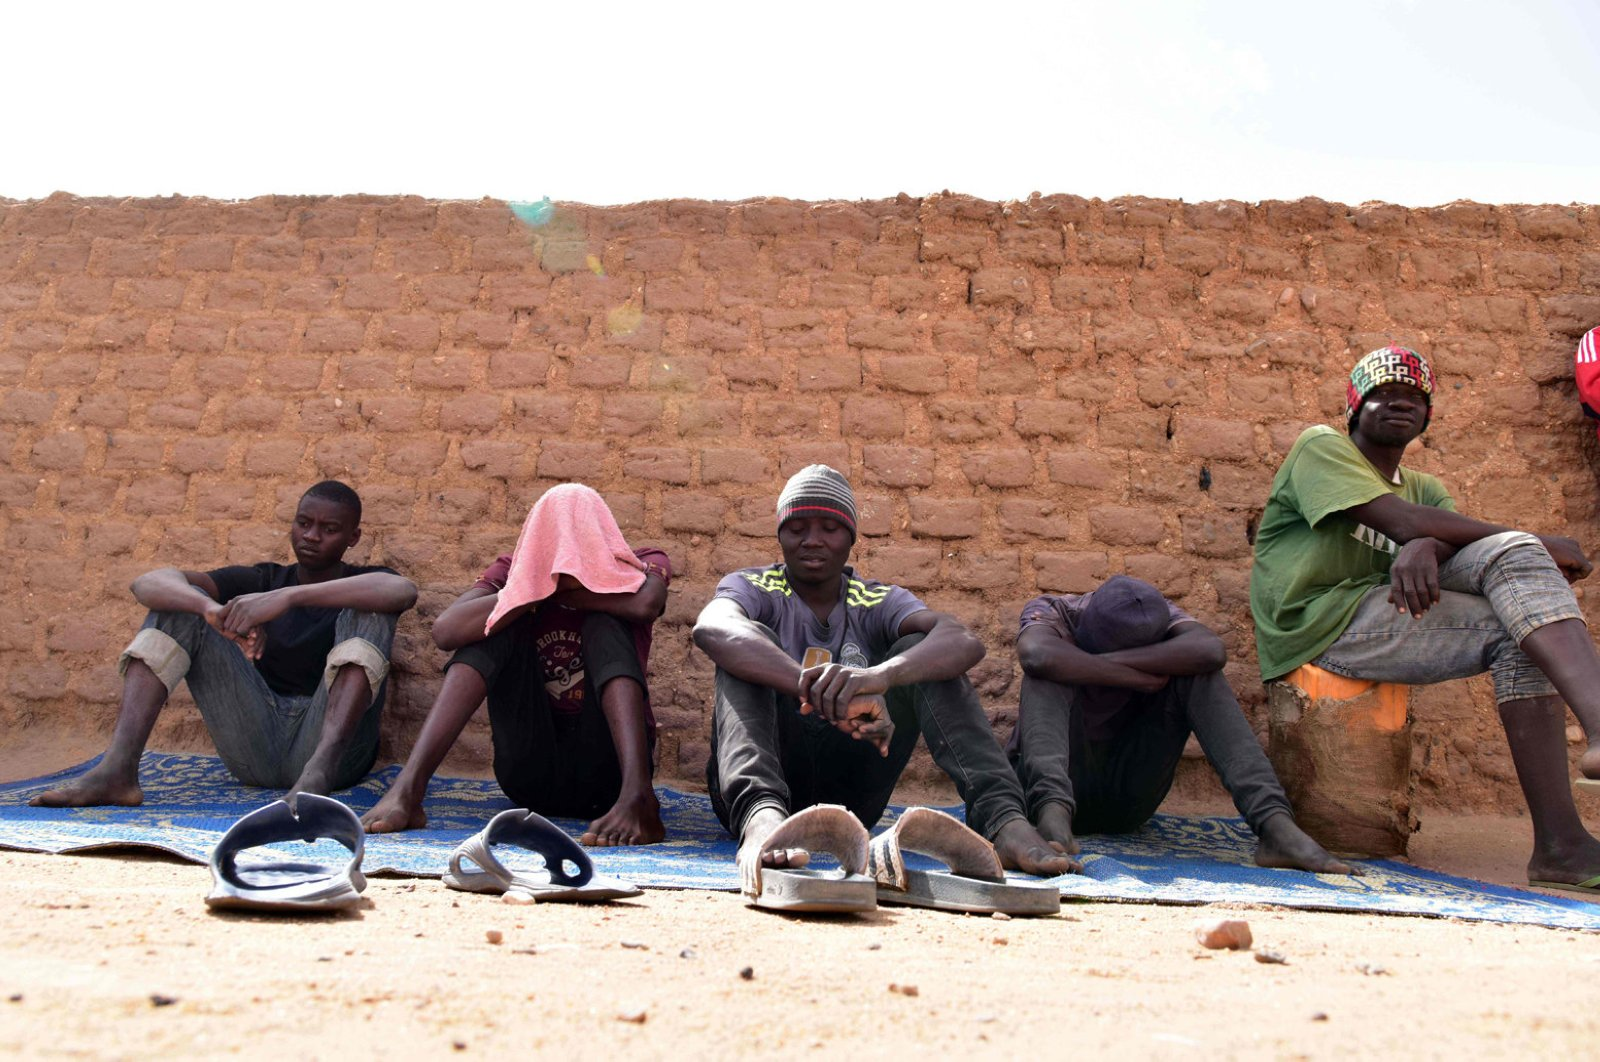 """Migrants from West Africa wait in a room at a """"ghetto,"""" Agadez, Apr. 1, 2017. (AFP Photo)"""